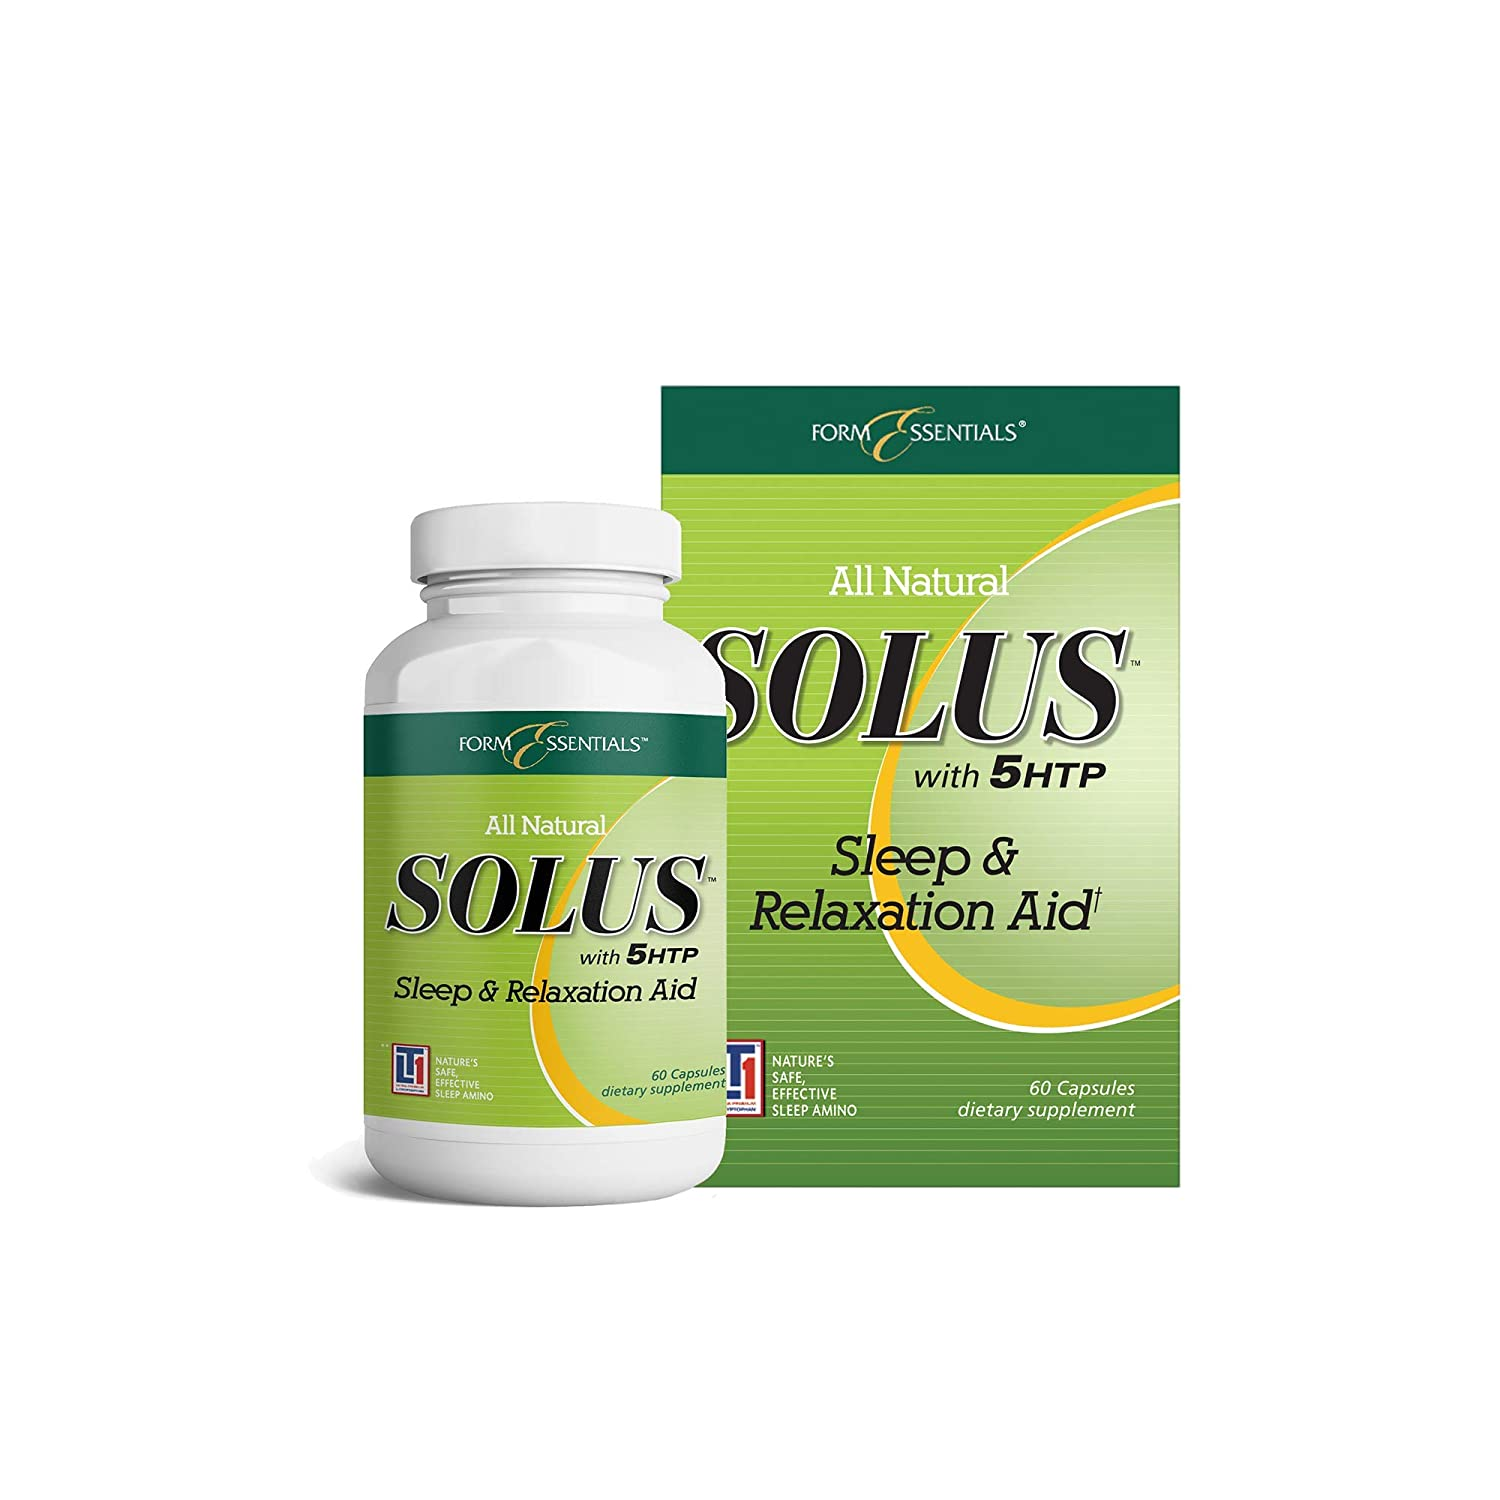 Amazon.com: Form Essentials Solus with 5HTP All Natural Sleep and  Relaxation Supplement 60 Capsules: Health & Personal Care